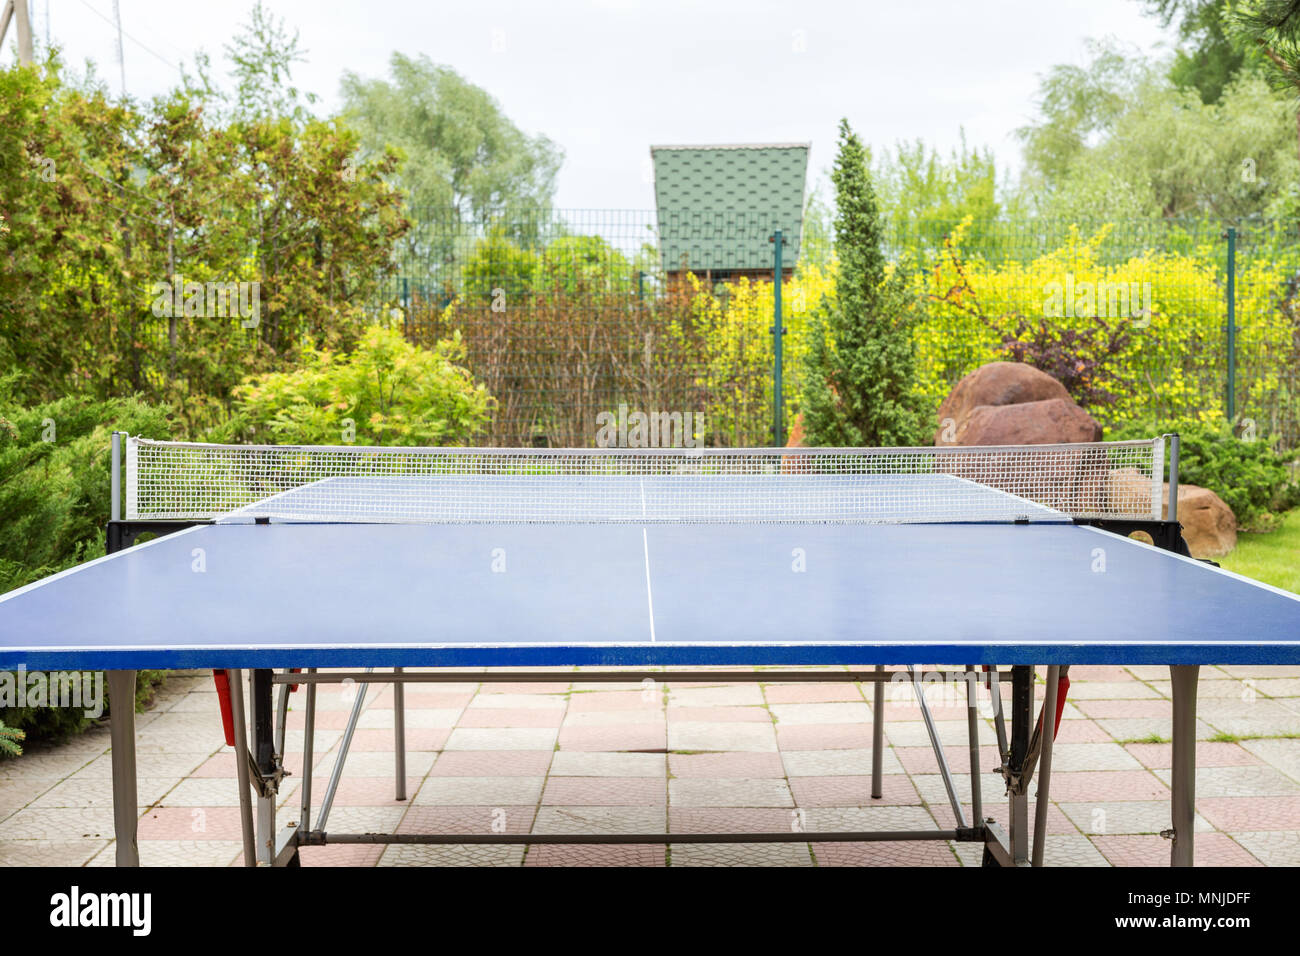 Blue Ping Pong Table Outdoors. Table Tennis Equipment In Park. Front View,  Product Display